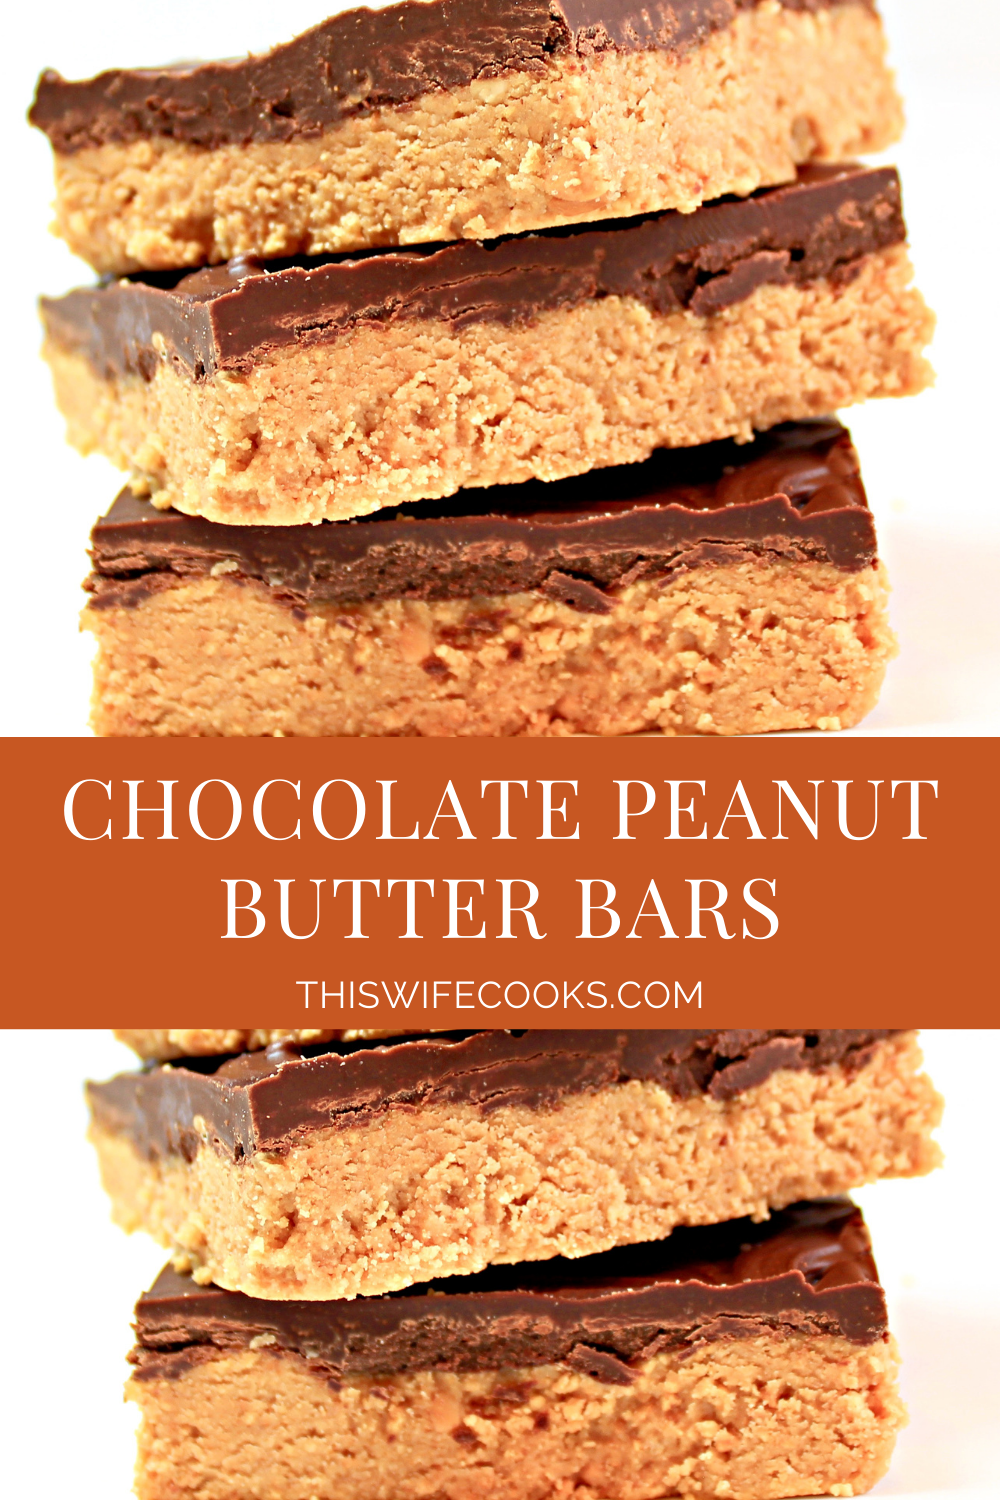 Chocolate Peanut Butter Bars ~ 5 ingredients! If you like Reese's peanut butter cups, you are going to love this easy, homemade, no-bake version of the classic candy!  via @thiswifecooks